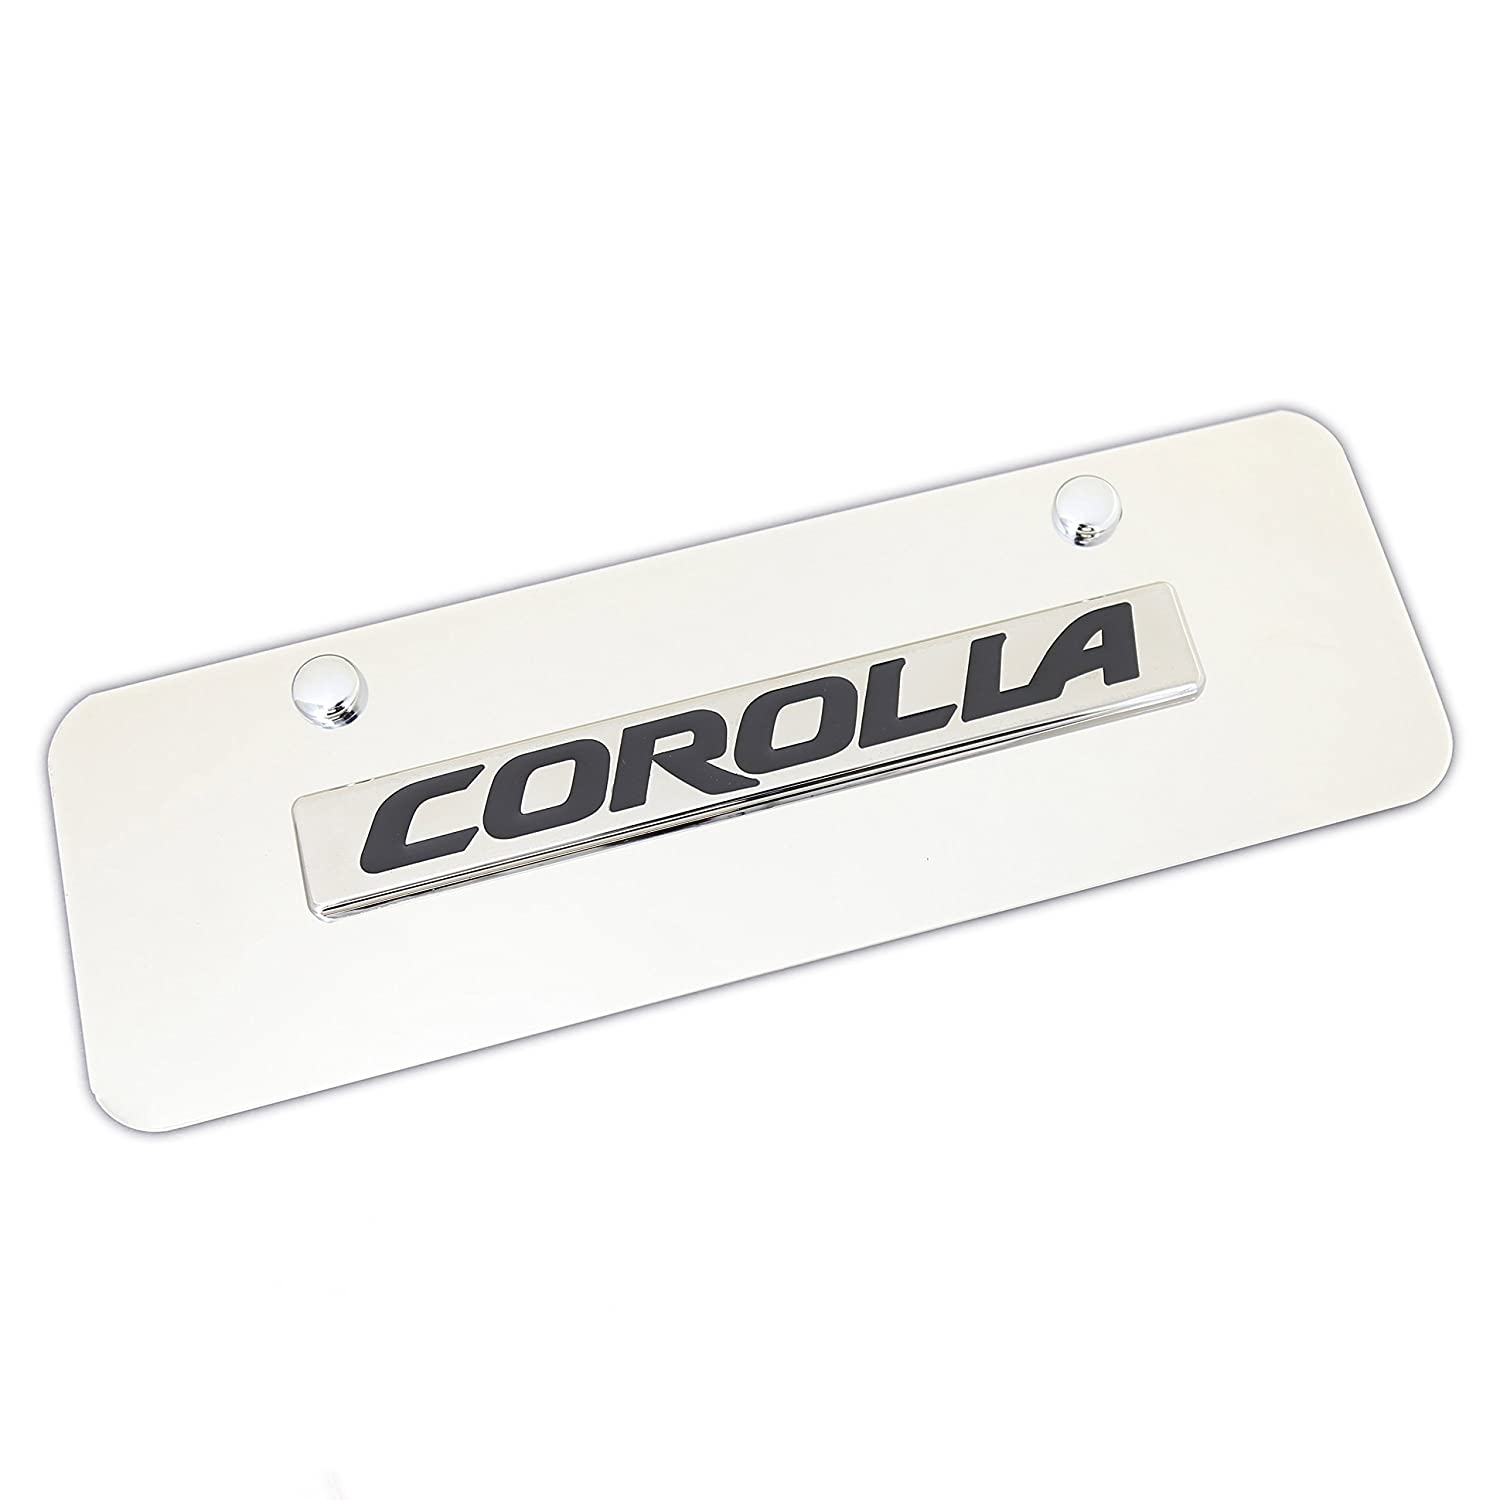 Toyota Corolla Name Badge On Mini Polished Stainless Steel License Plate